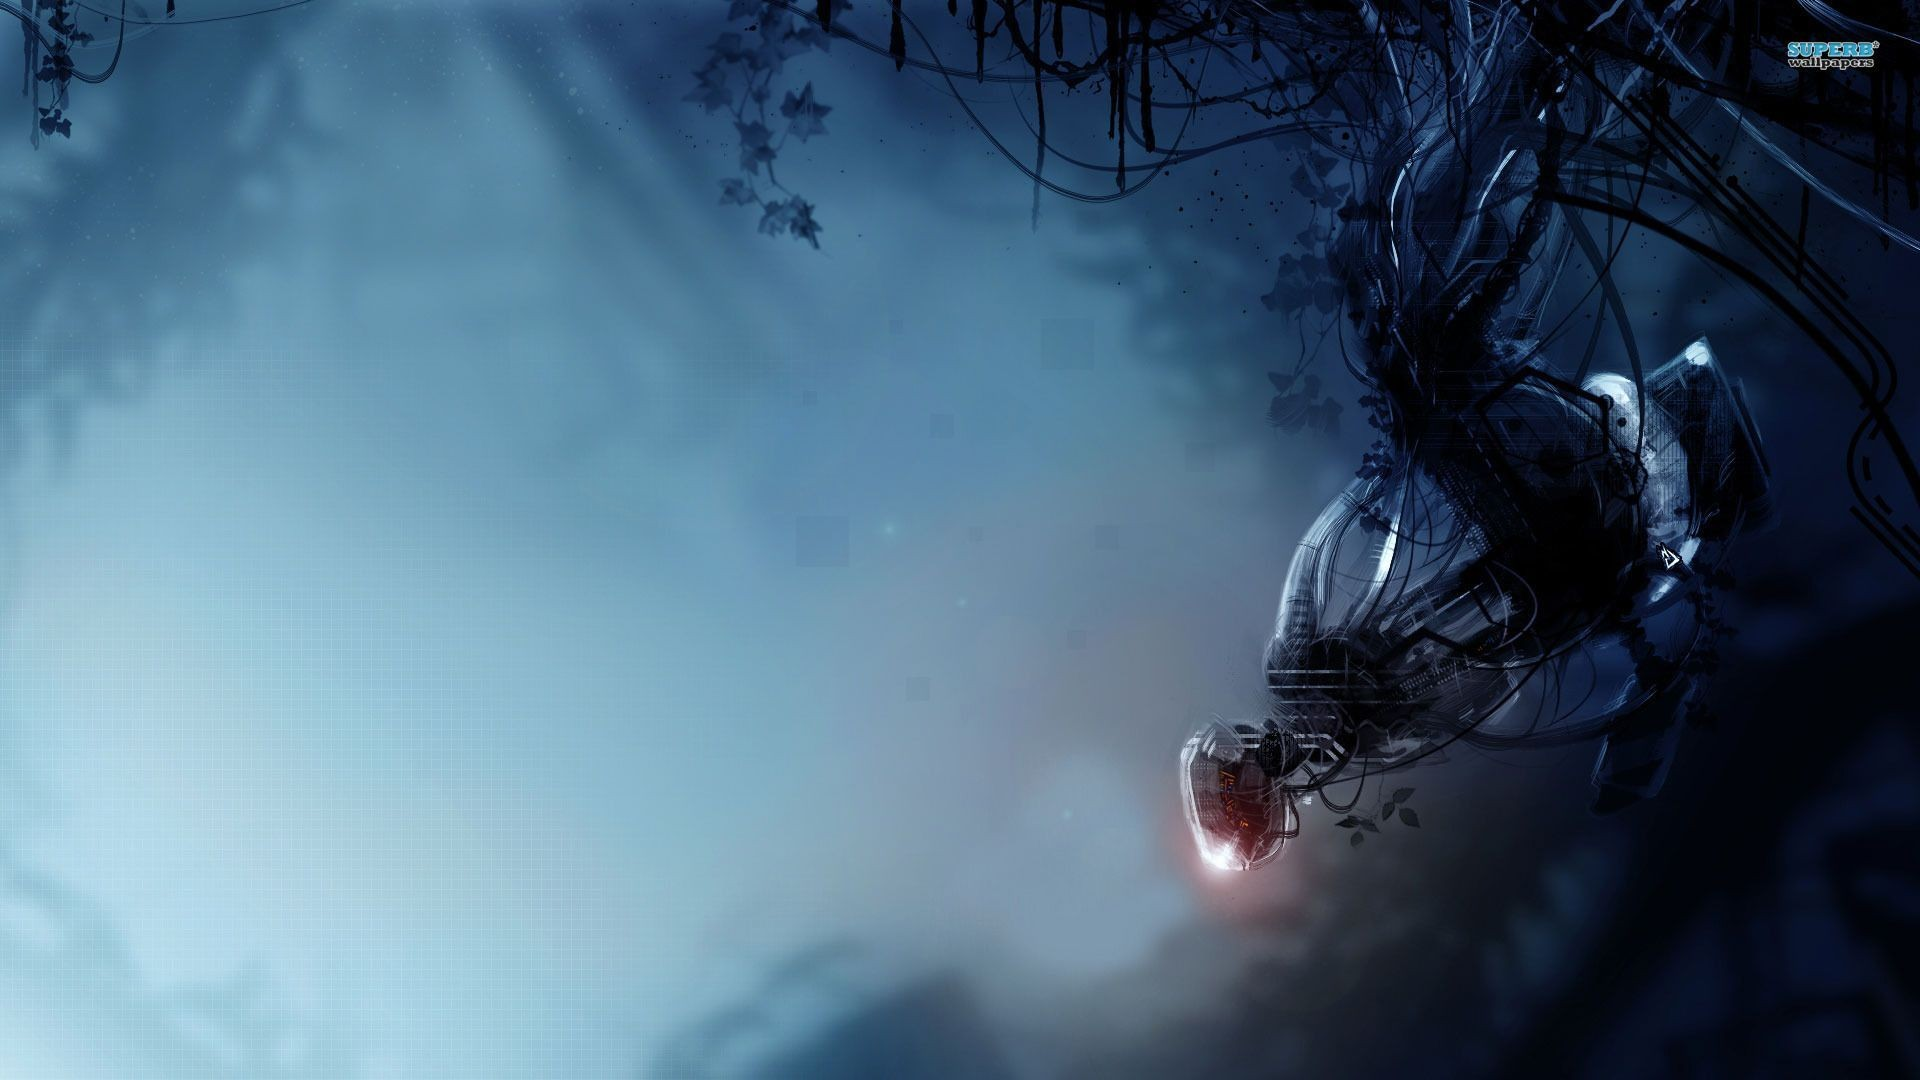 Portal 2 Wallpaper ·① Download Free Awesome High